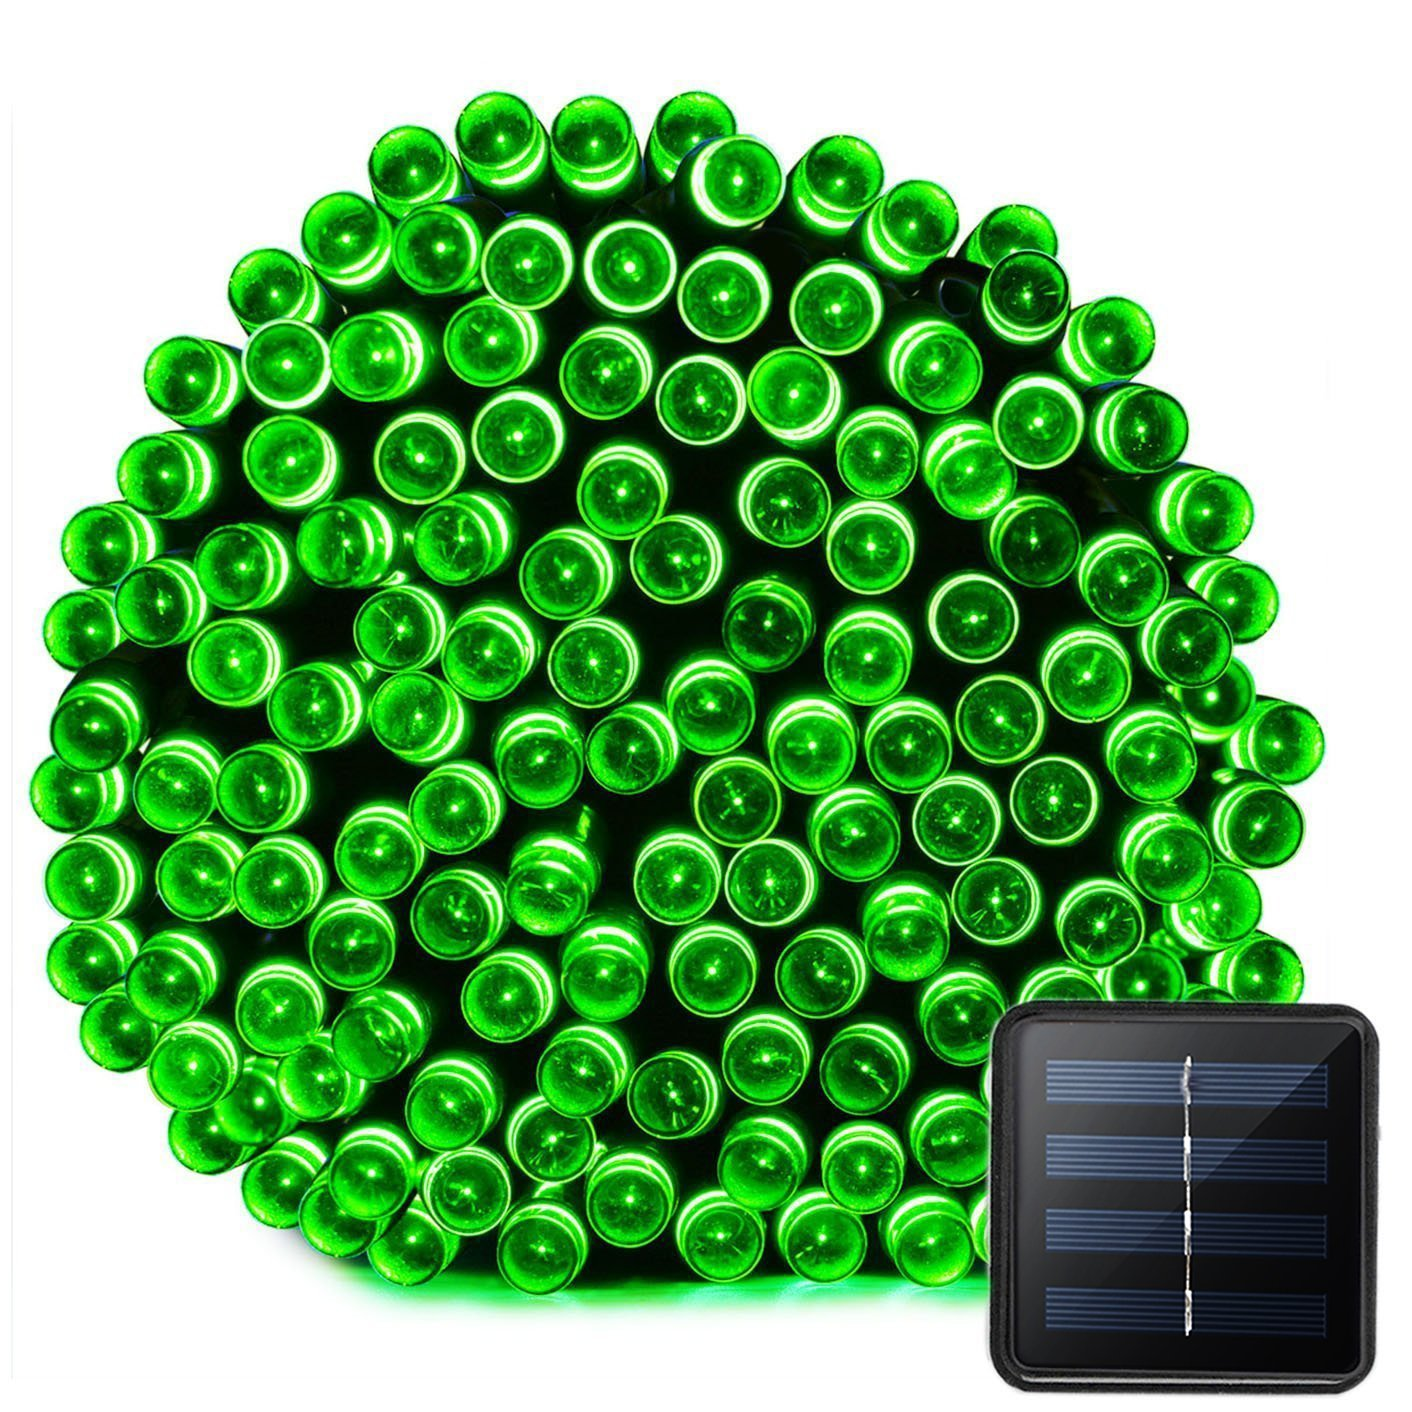 VMANOO Solar Christmas Lights, Happy St. Patrick's Day 72ft 22m 200 LED 8 Modes Solar String Lights for Outdoor, Indoor, Gardens, Homes, Party, Wedding, Halloween Decorations, Waterproof (Green)